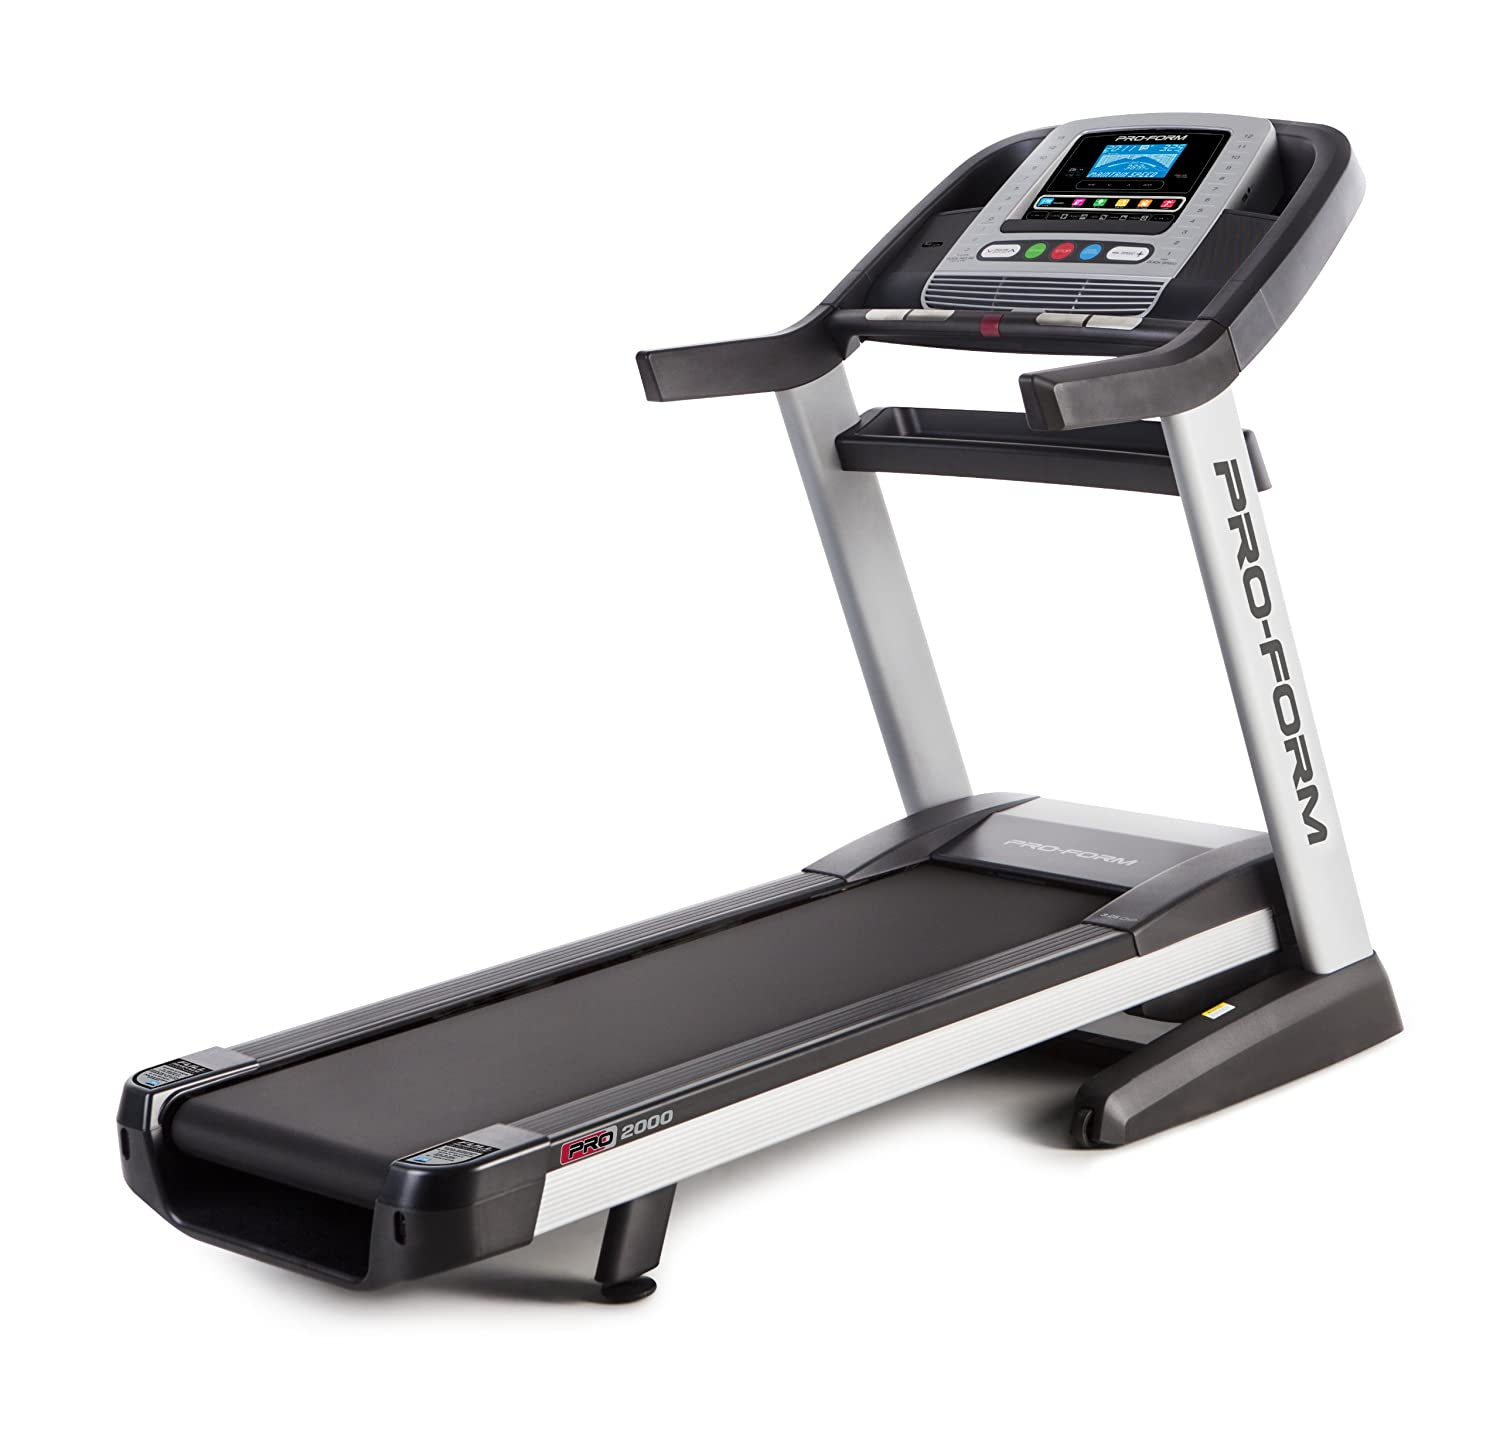 ProForm Pro 2000 Treadmill $999.99